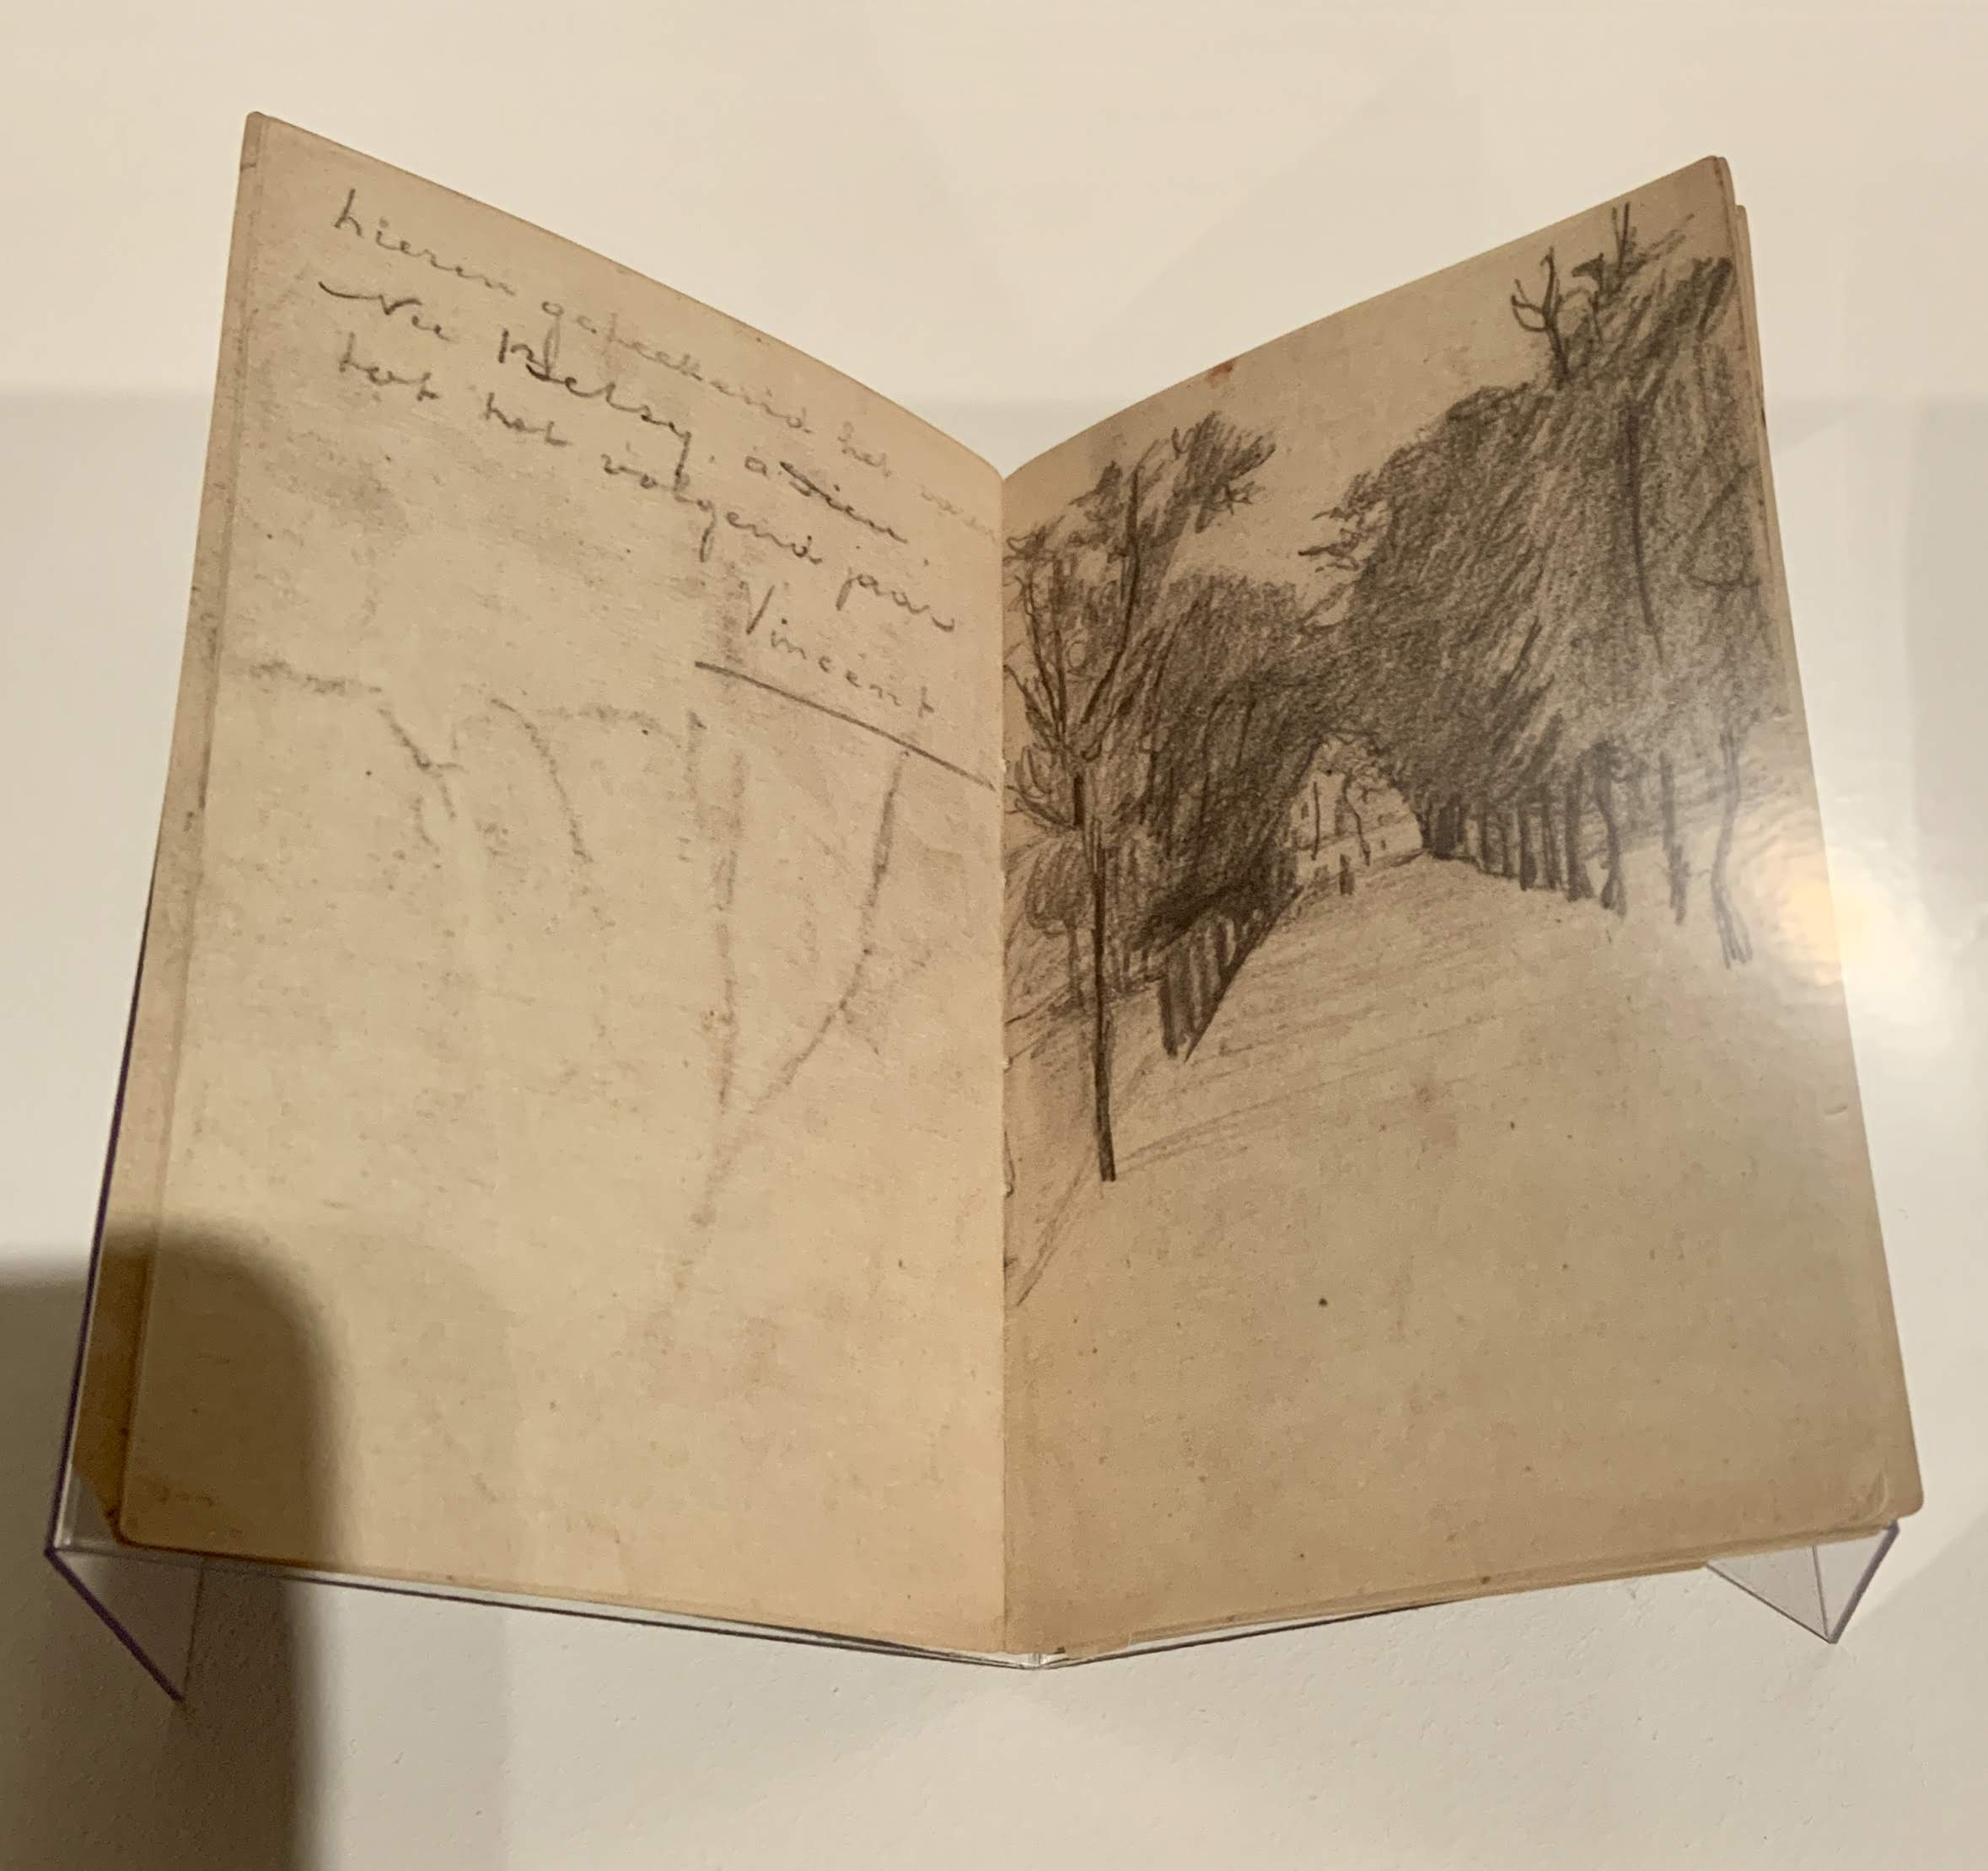 Sketch by Vincent van Gogh. 'Tree-lined avenue' in sketchbook to Betsy Tersteeg, 1875